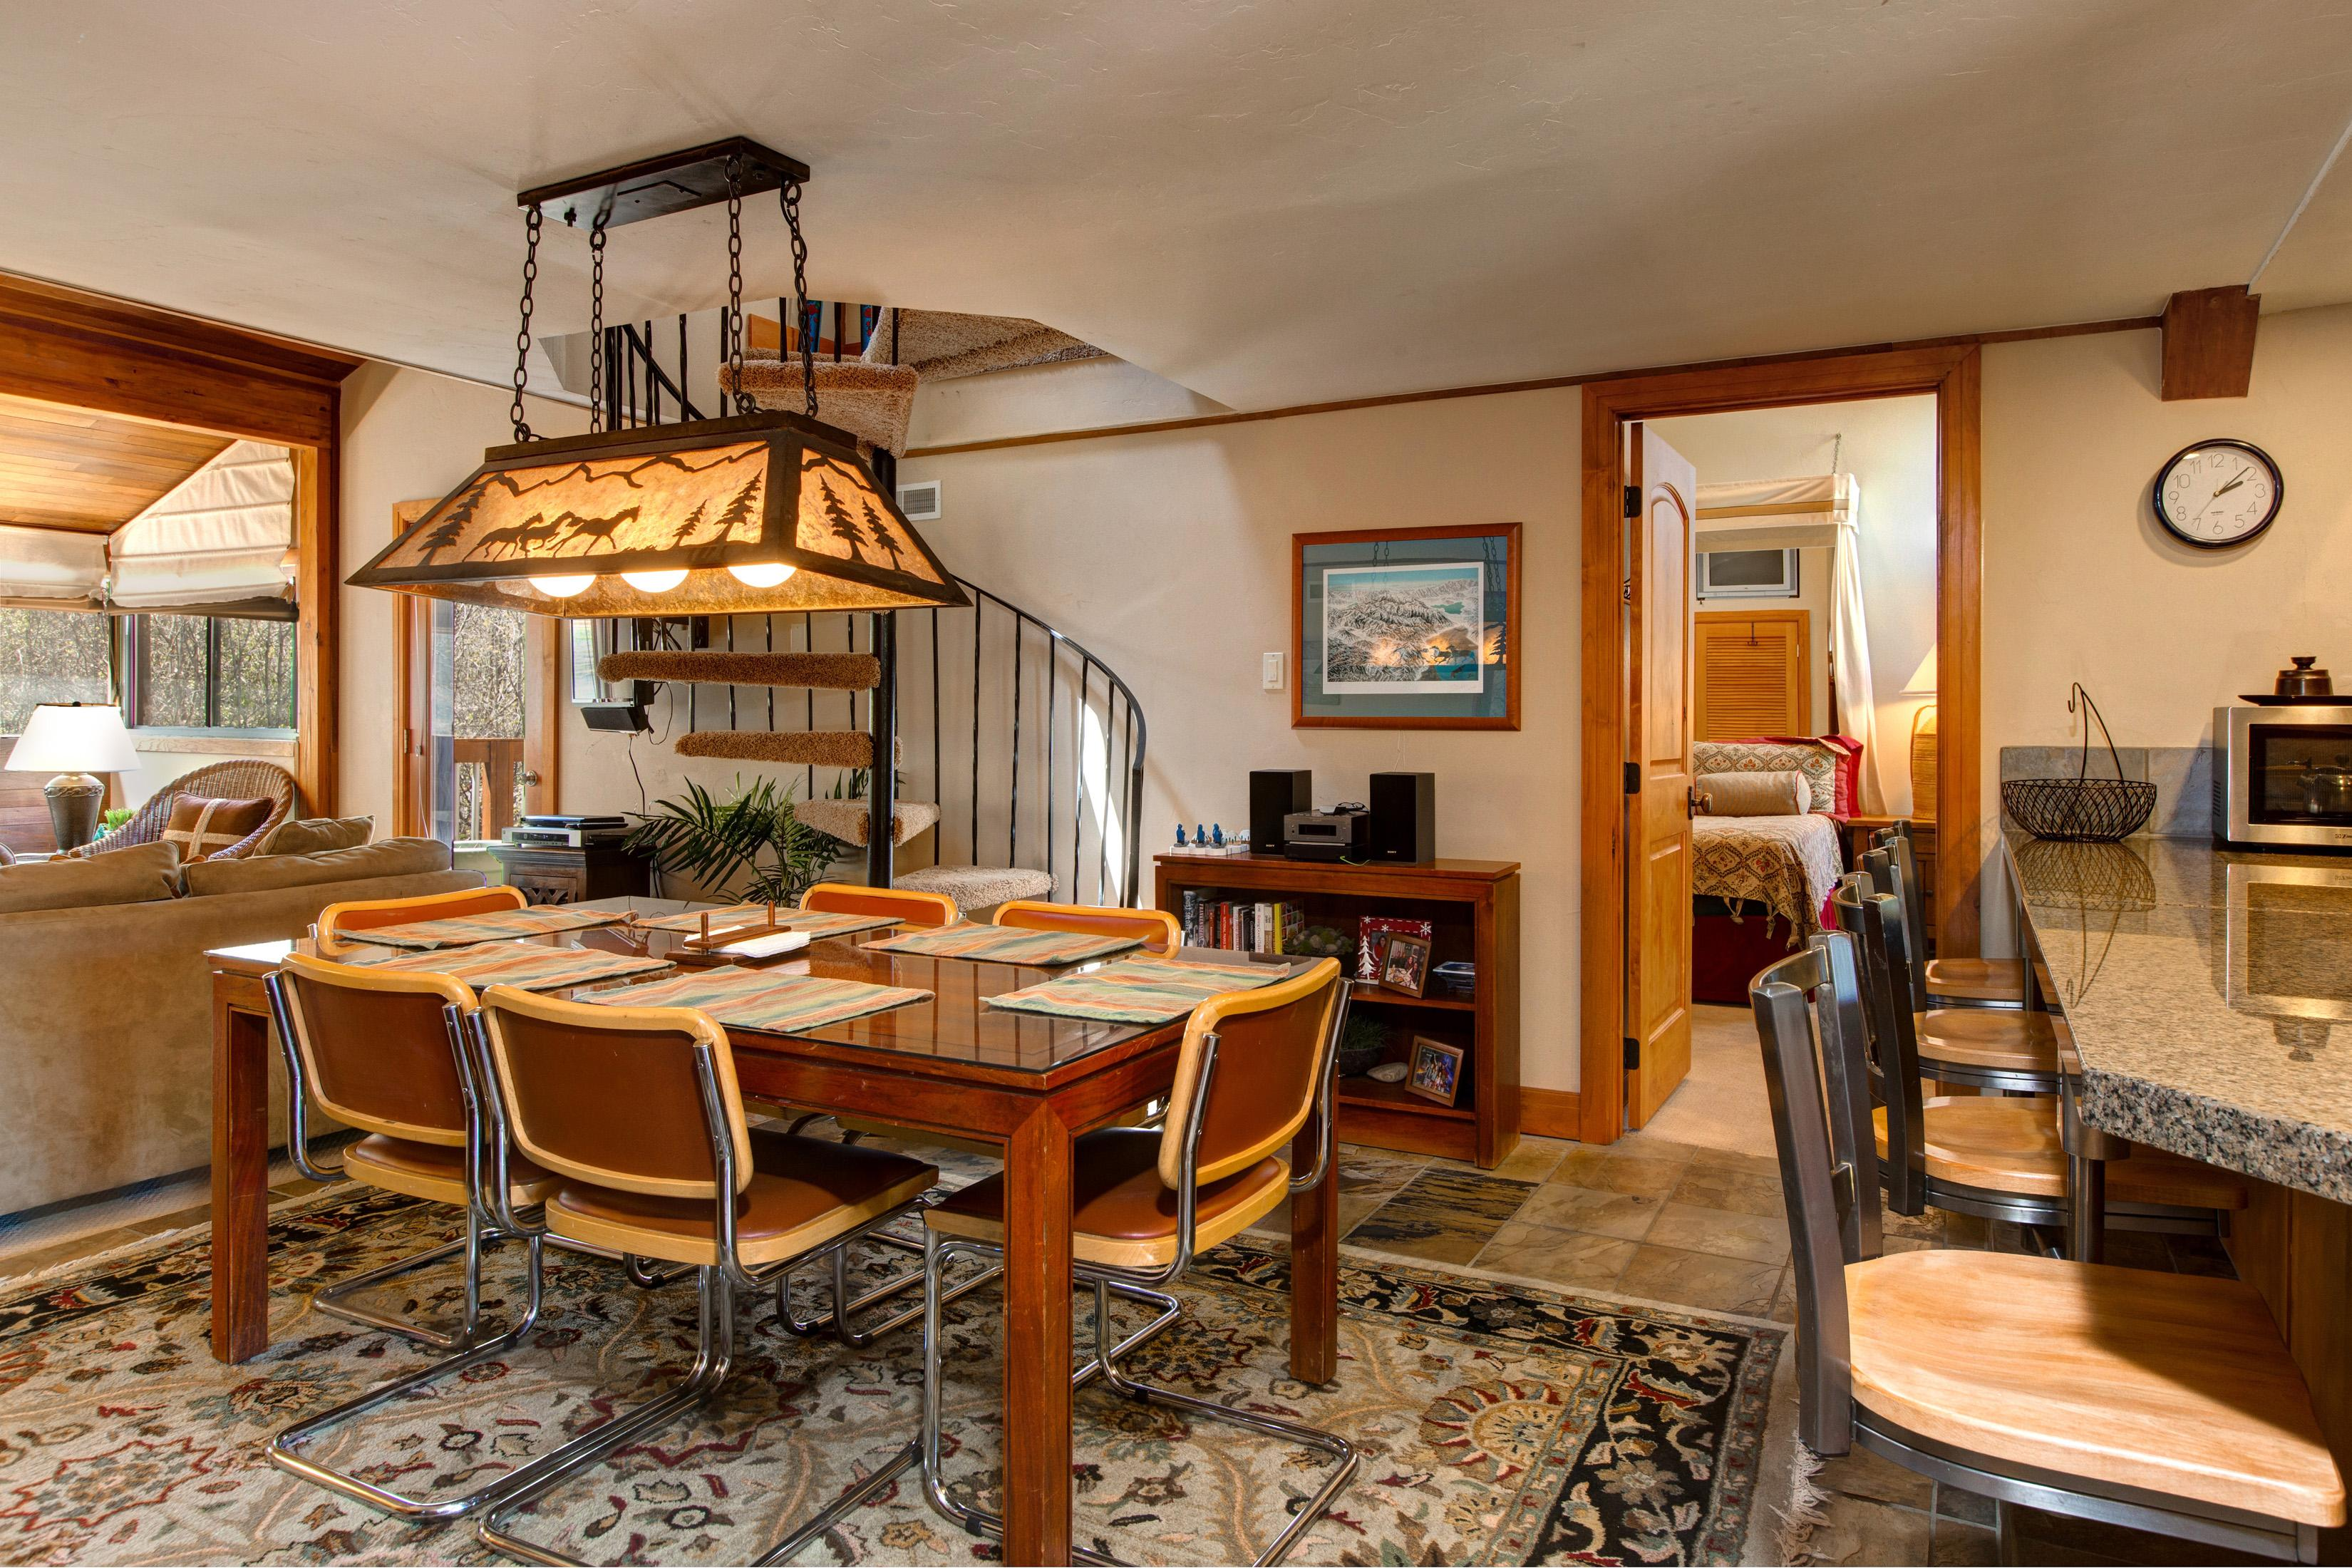 The unique dining area features a lovely wood table, 6 chairs, and a beautiful chandelier.